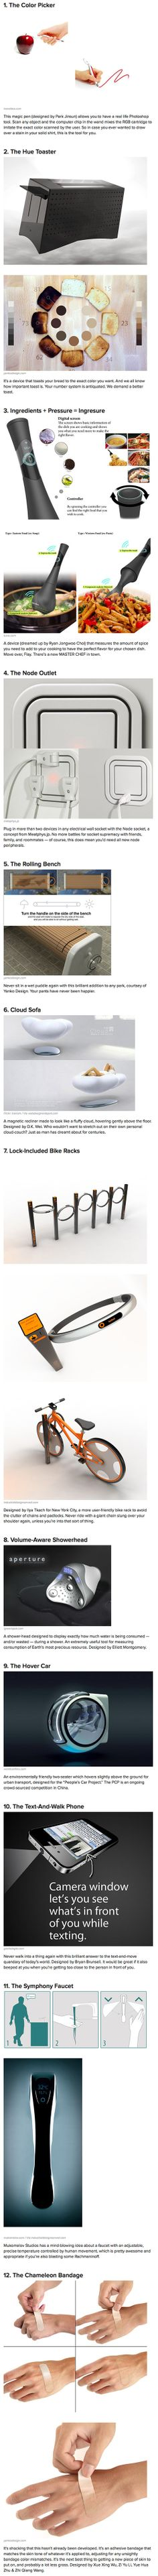 Check out a handful of awesome concept devices, direct from the depths of the human imagination.